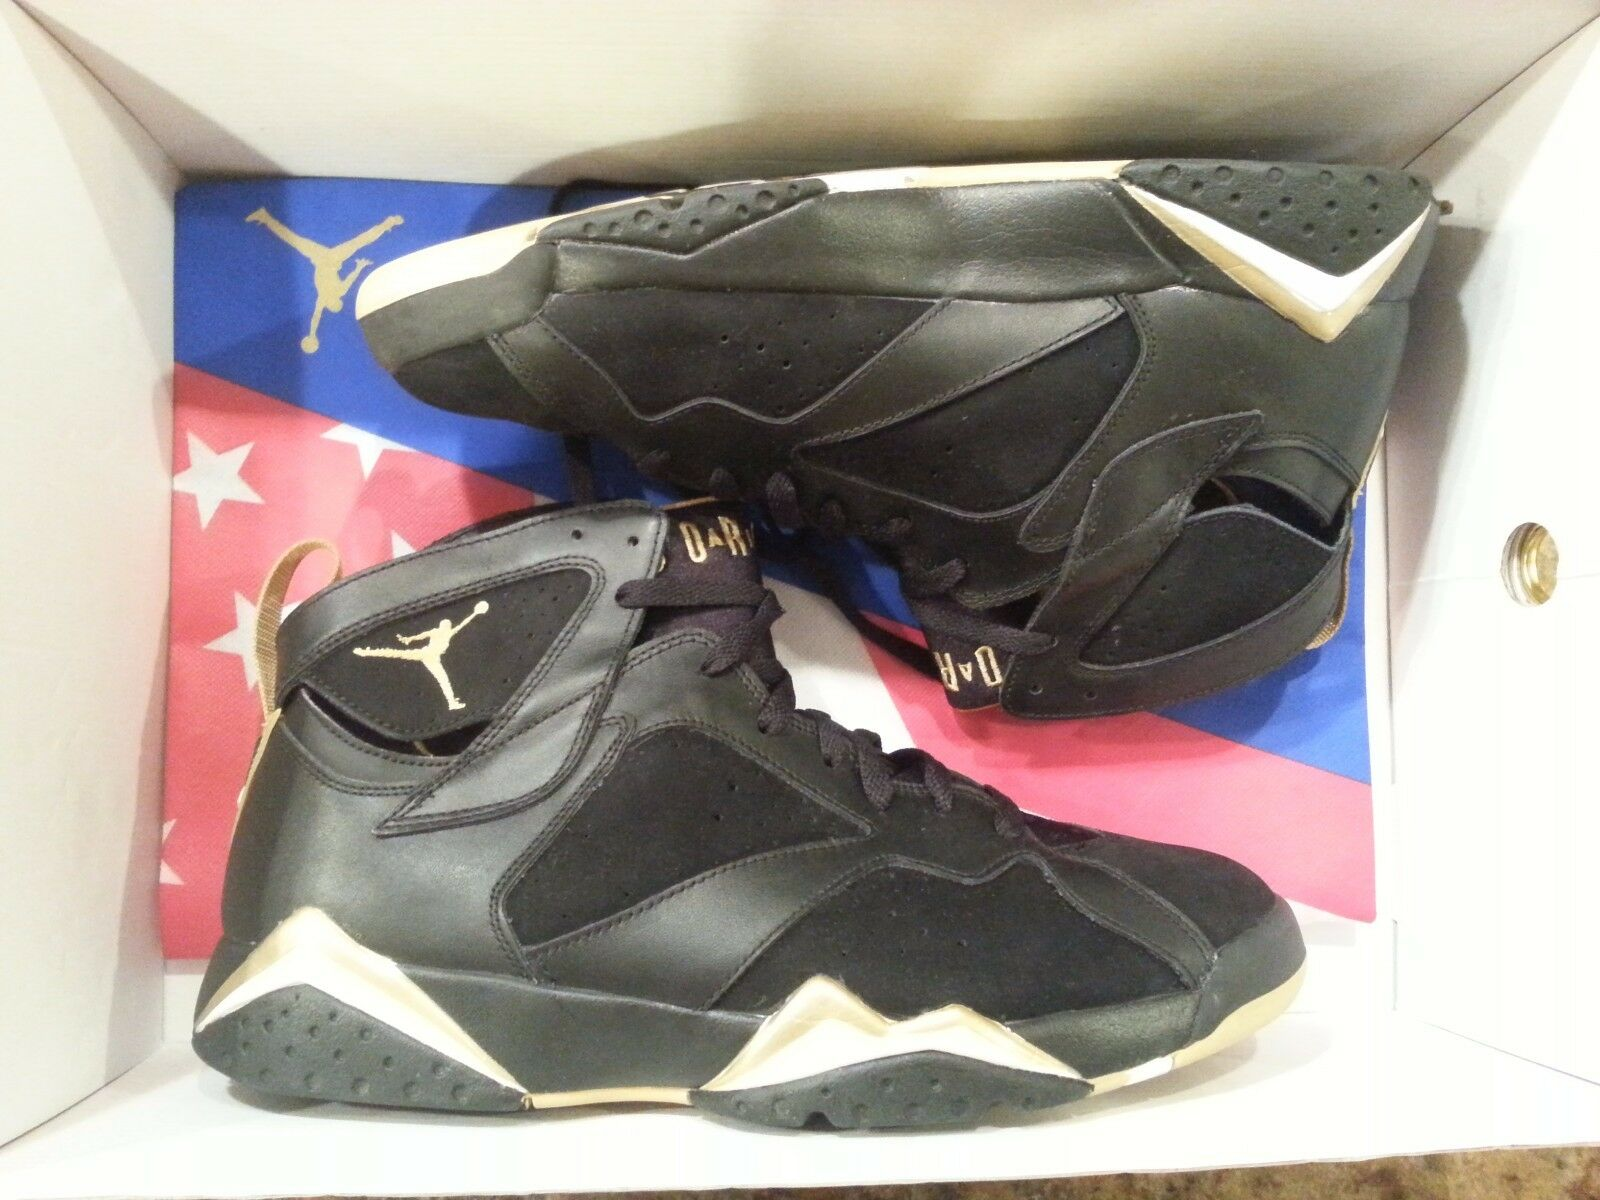 Nike Air Jordan 7 VII Retro Nero Gold GMP Golden Moments Size 12.5. 535357-935